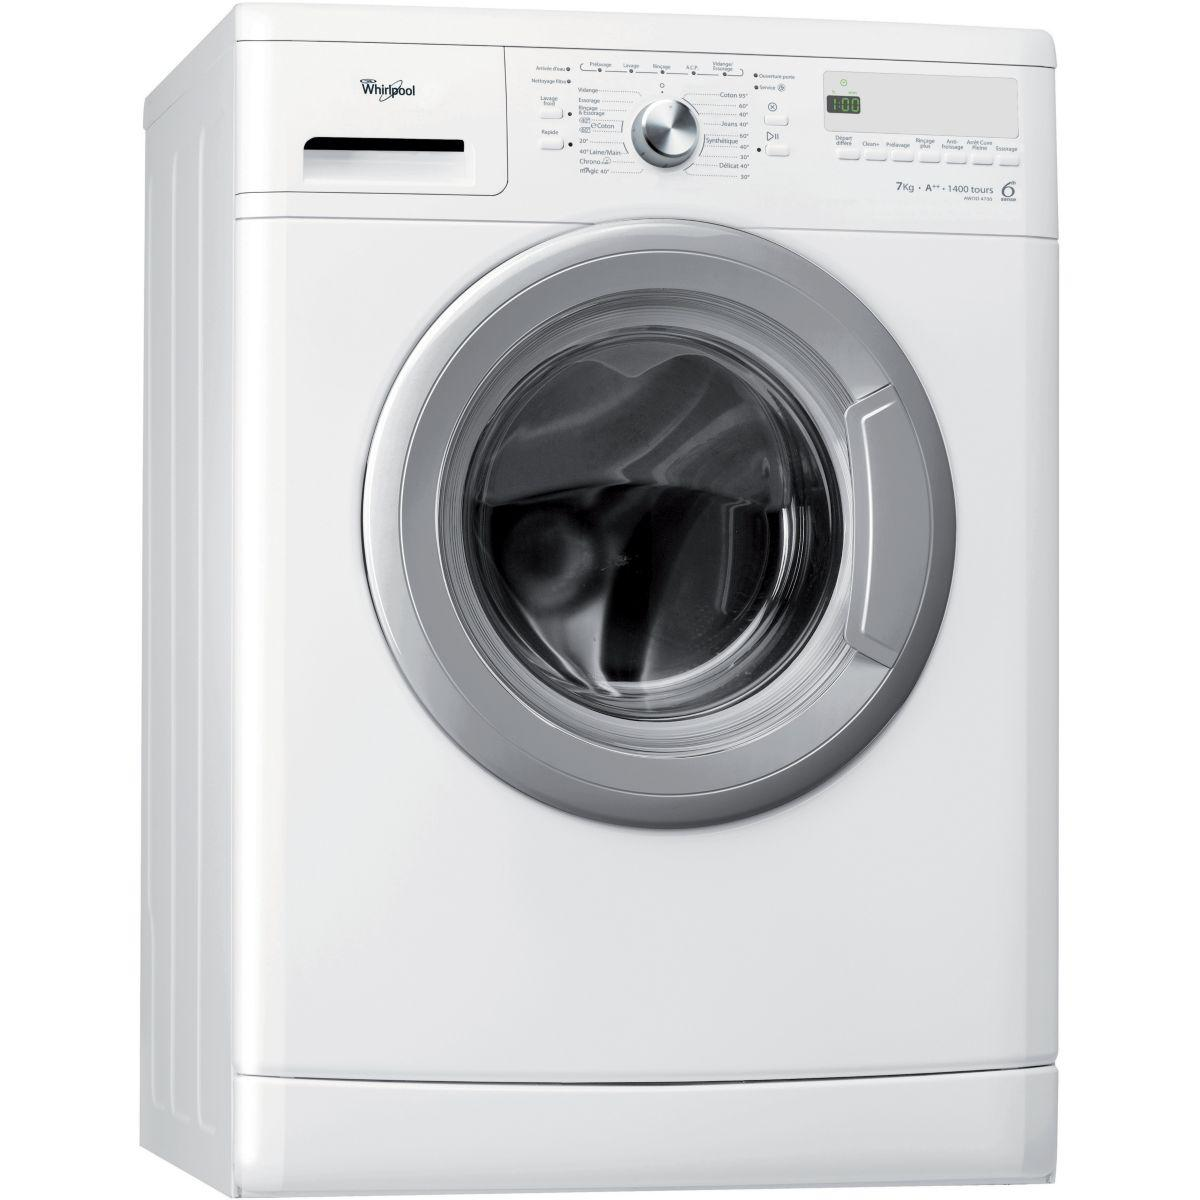 Ll front whirlpool awod4700 - 7% de remise : code gam7 (photo)